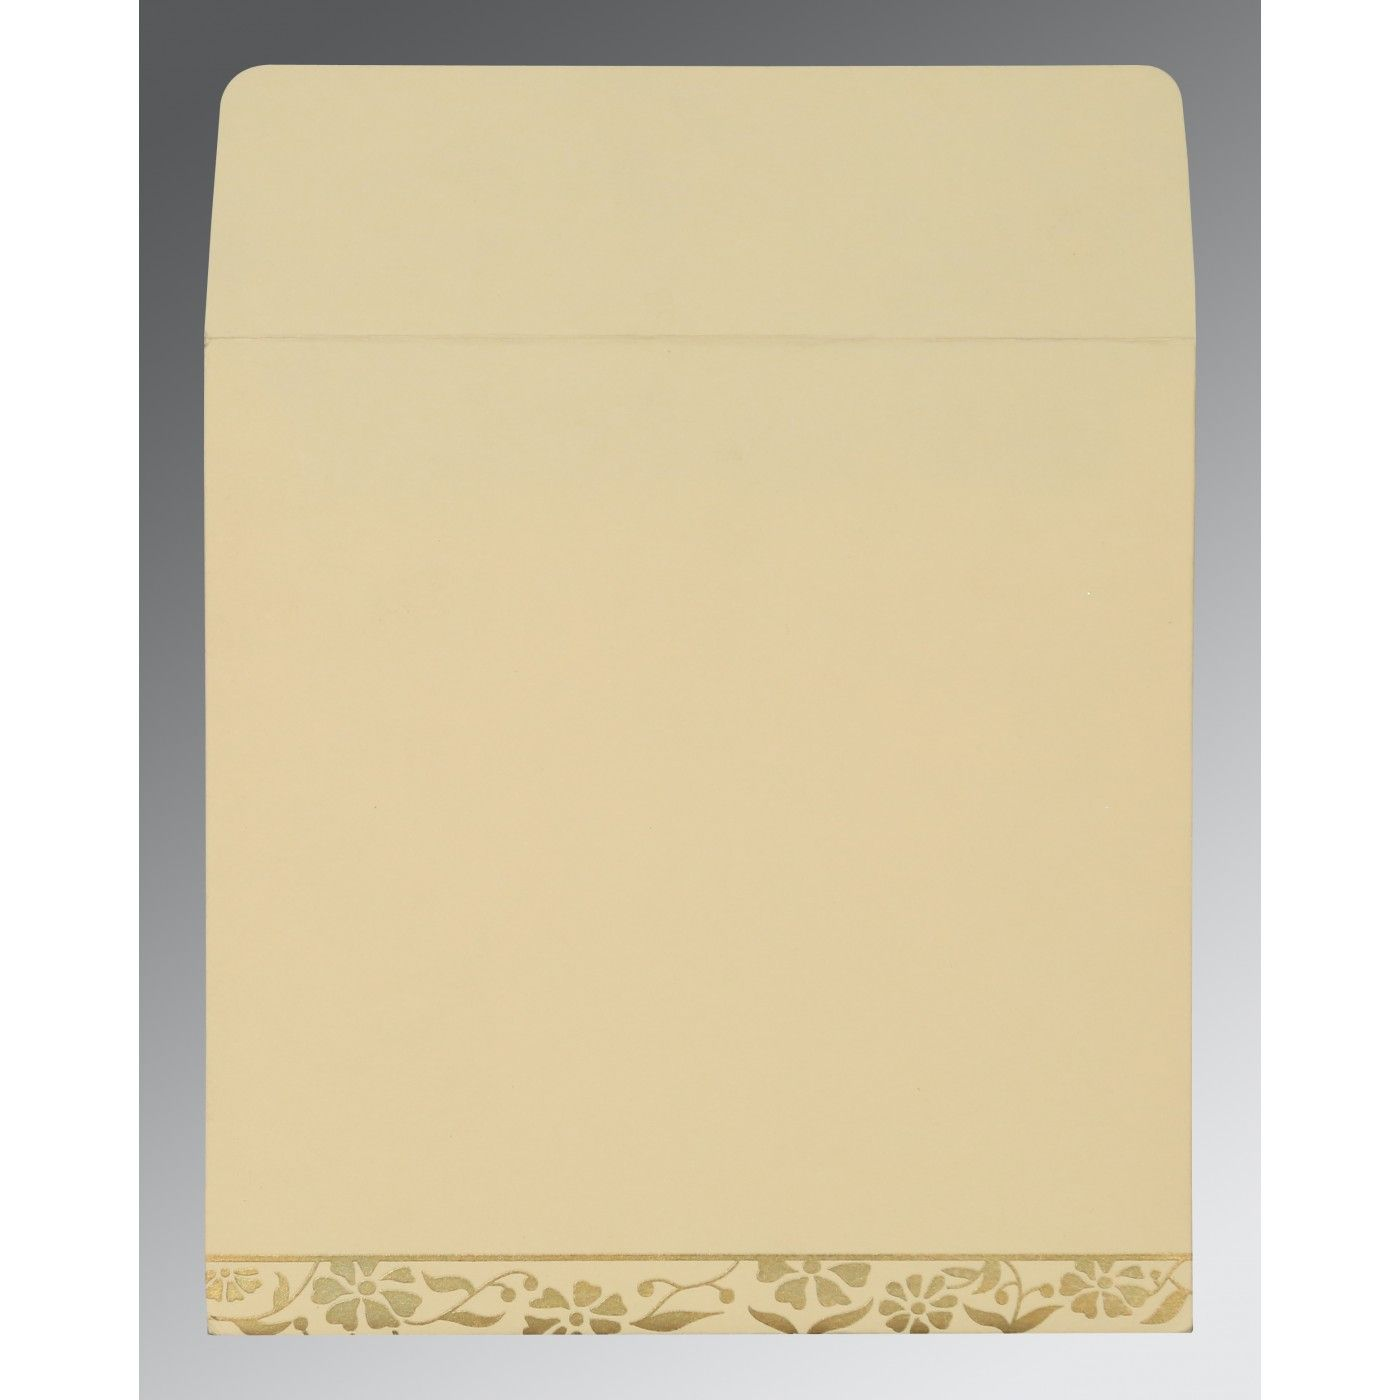 OFF-WHITE MATTE FLORAL THEMED - SCREEN PRINTED WEDDING CARD : CRU-8222I - IndianWeddingCards